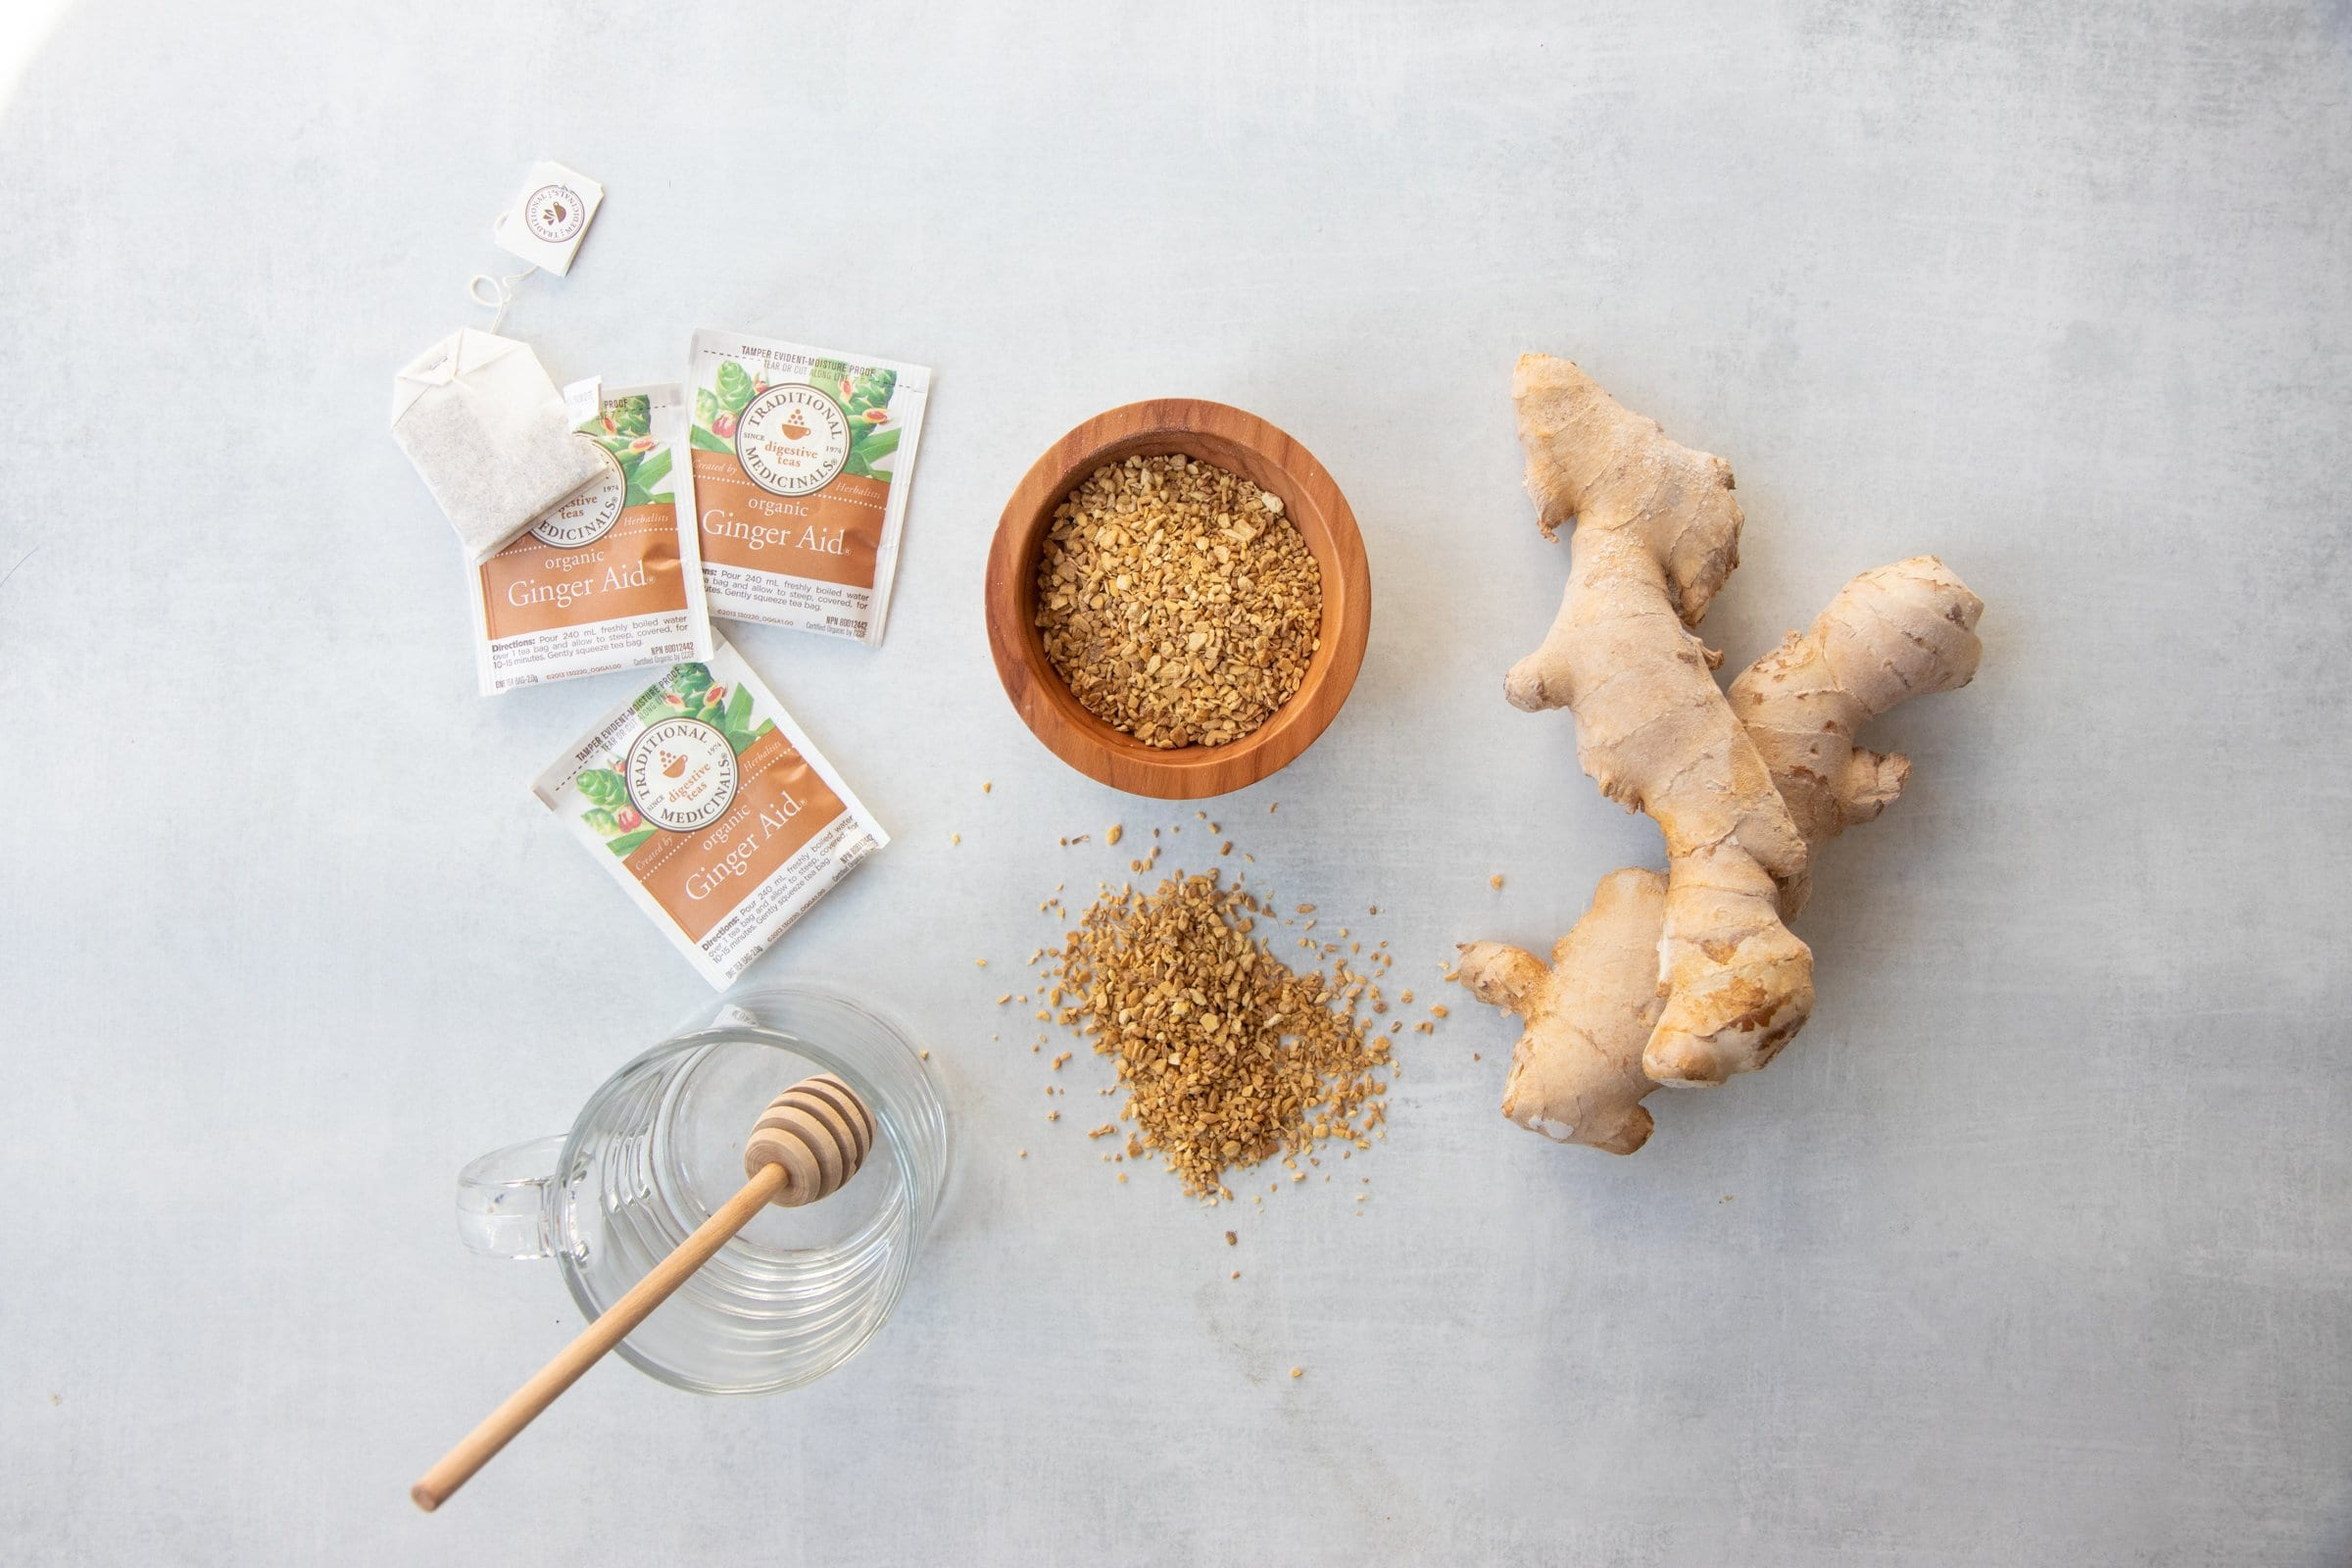 Three ways to make ginger tea on a grey background - bagged tea, dried ginger root, and fresh ginger root